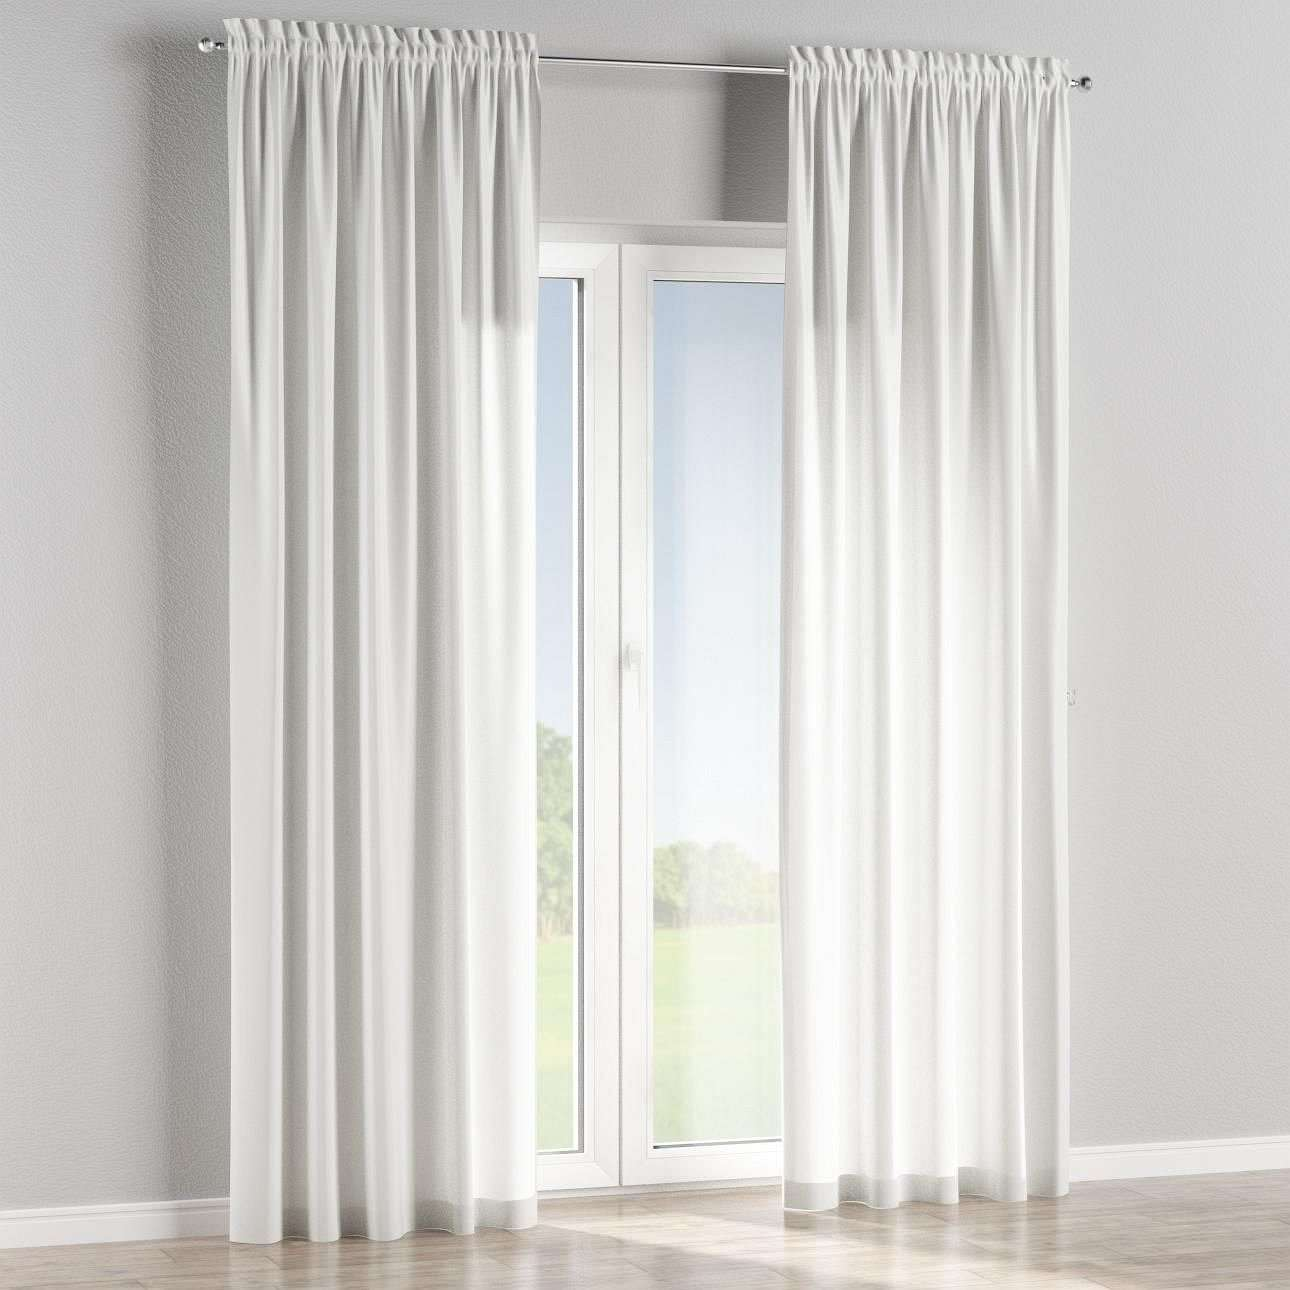 Slot and frill curtains in collection Fleur , fabric: 137-25